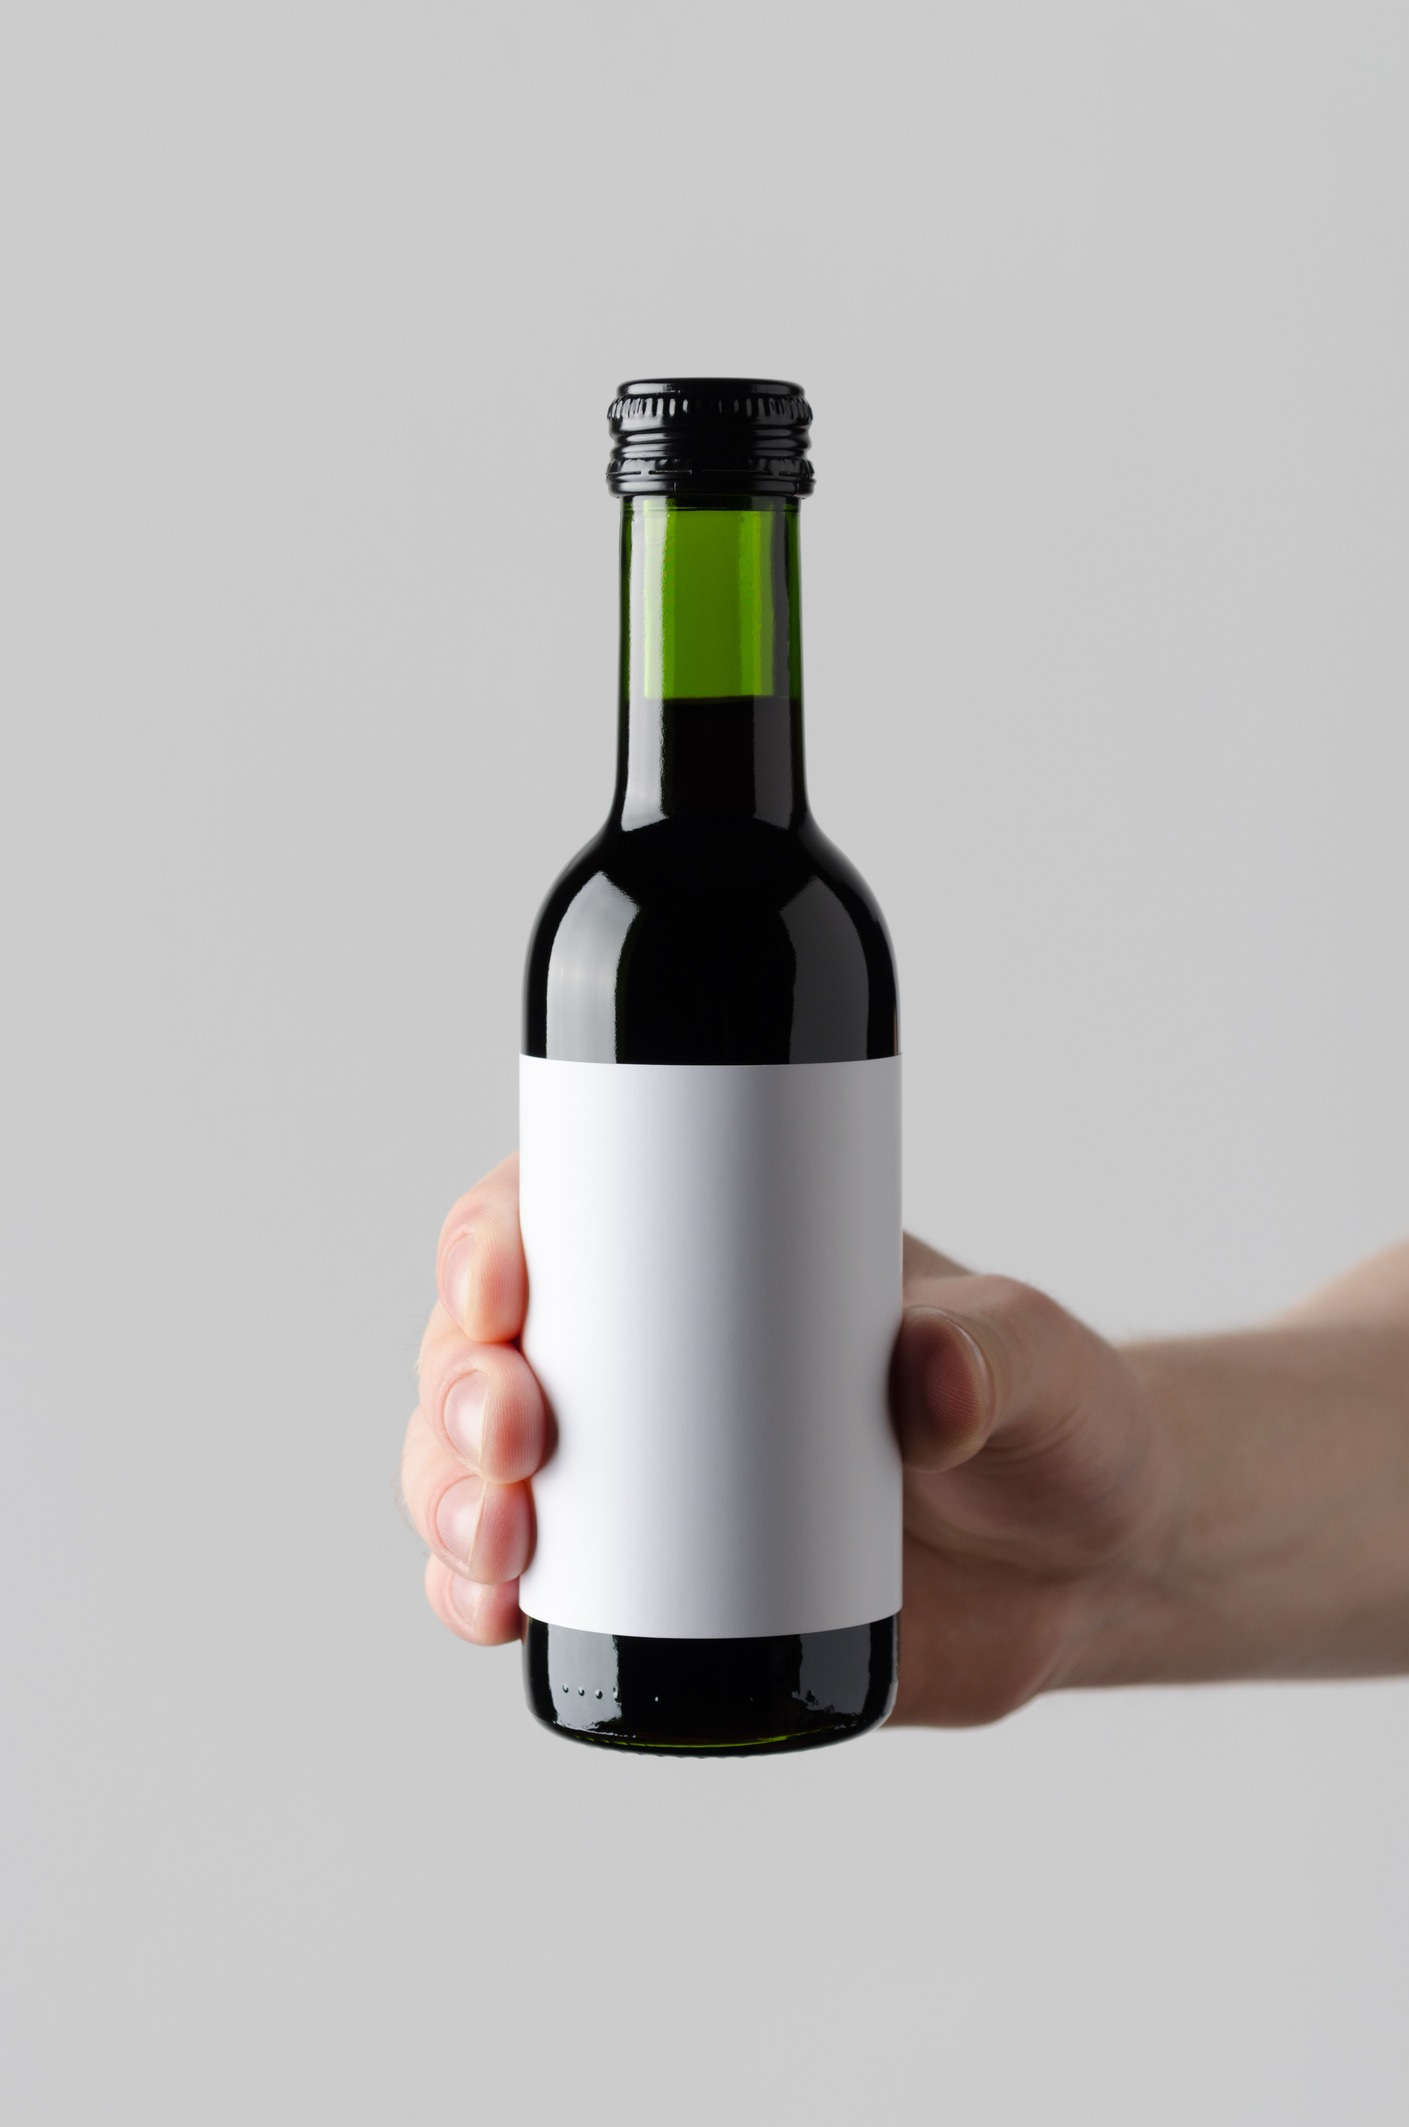 image of a 375ml wine bottle